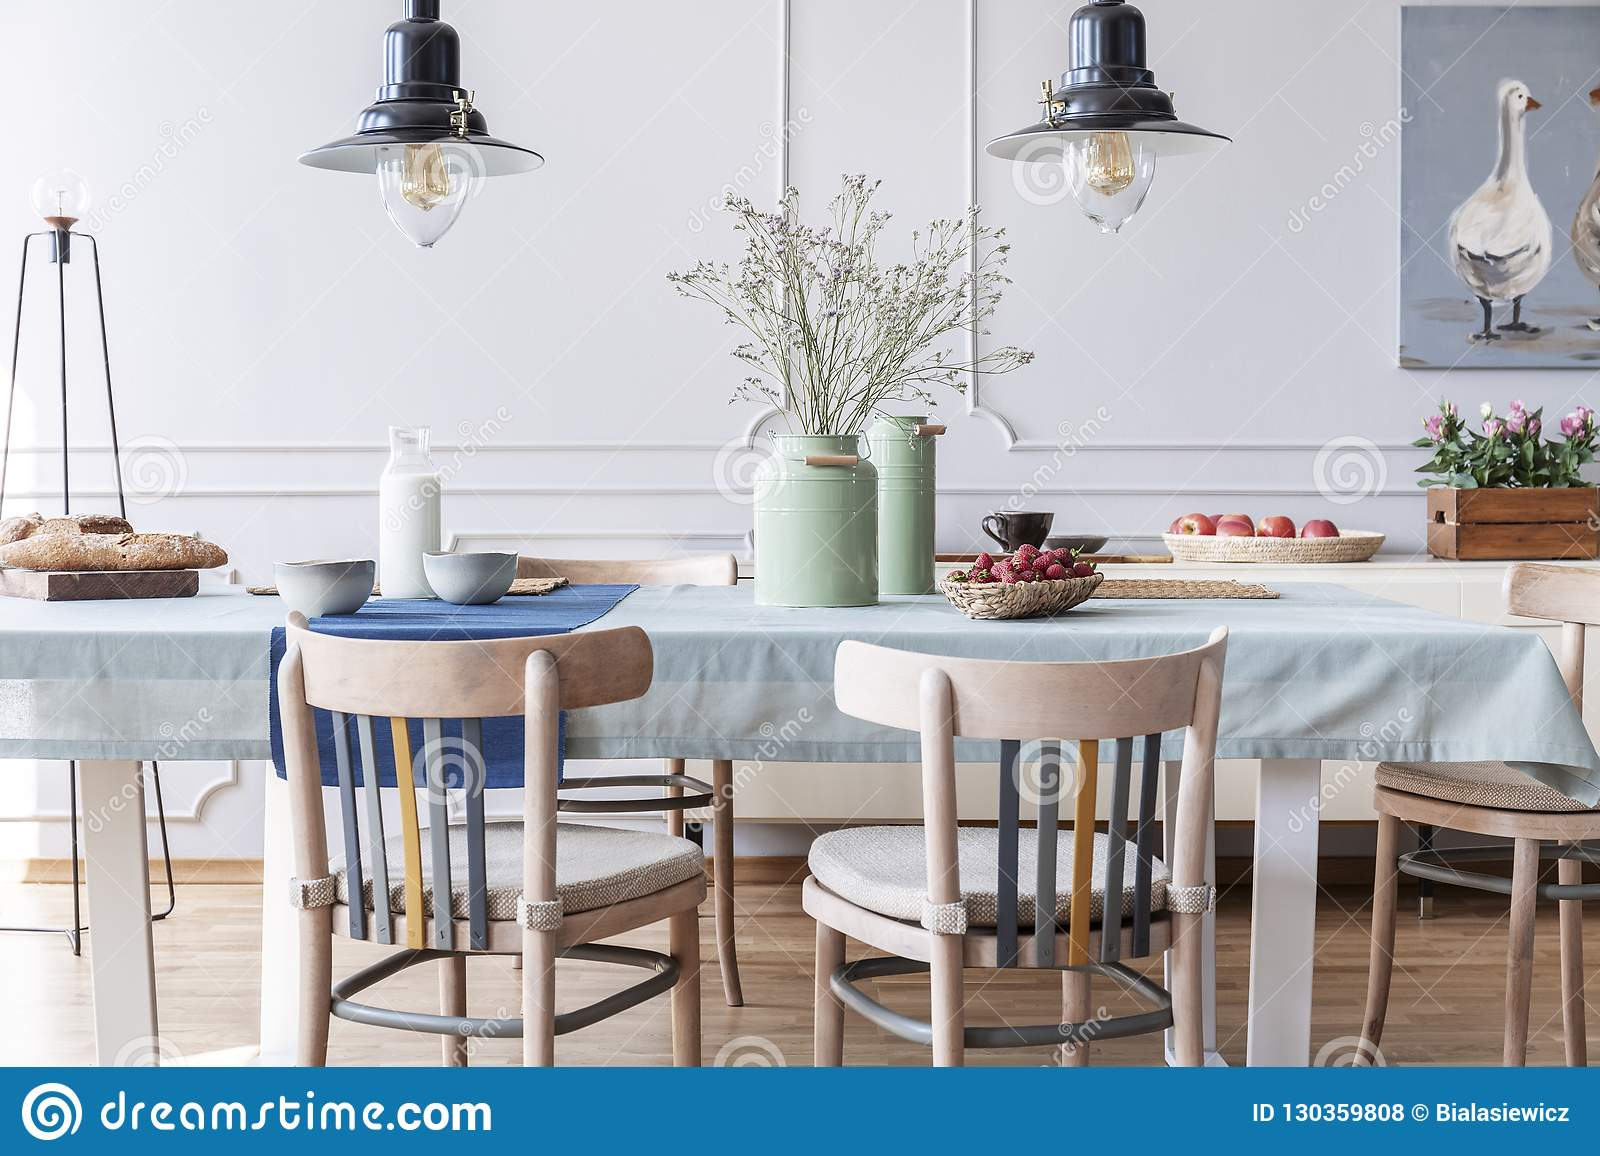 Wooden chairs at table with flowers and food in white cottage dining room interior with lamps and poster. Real photo